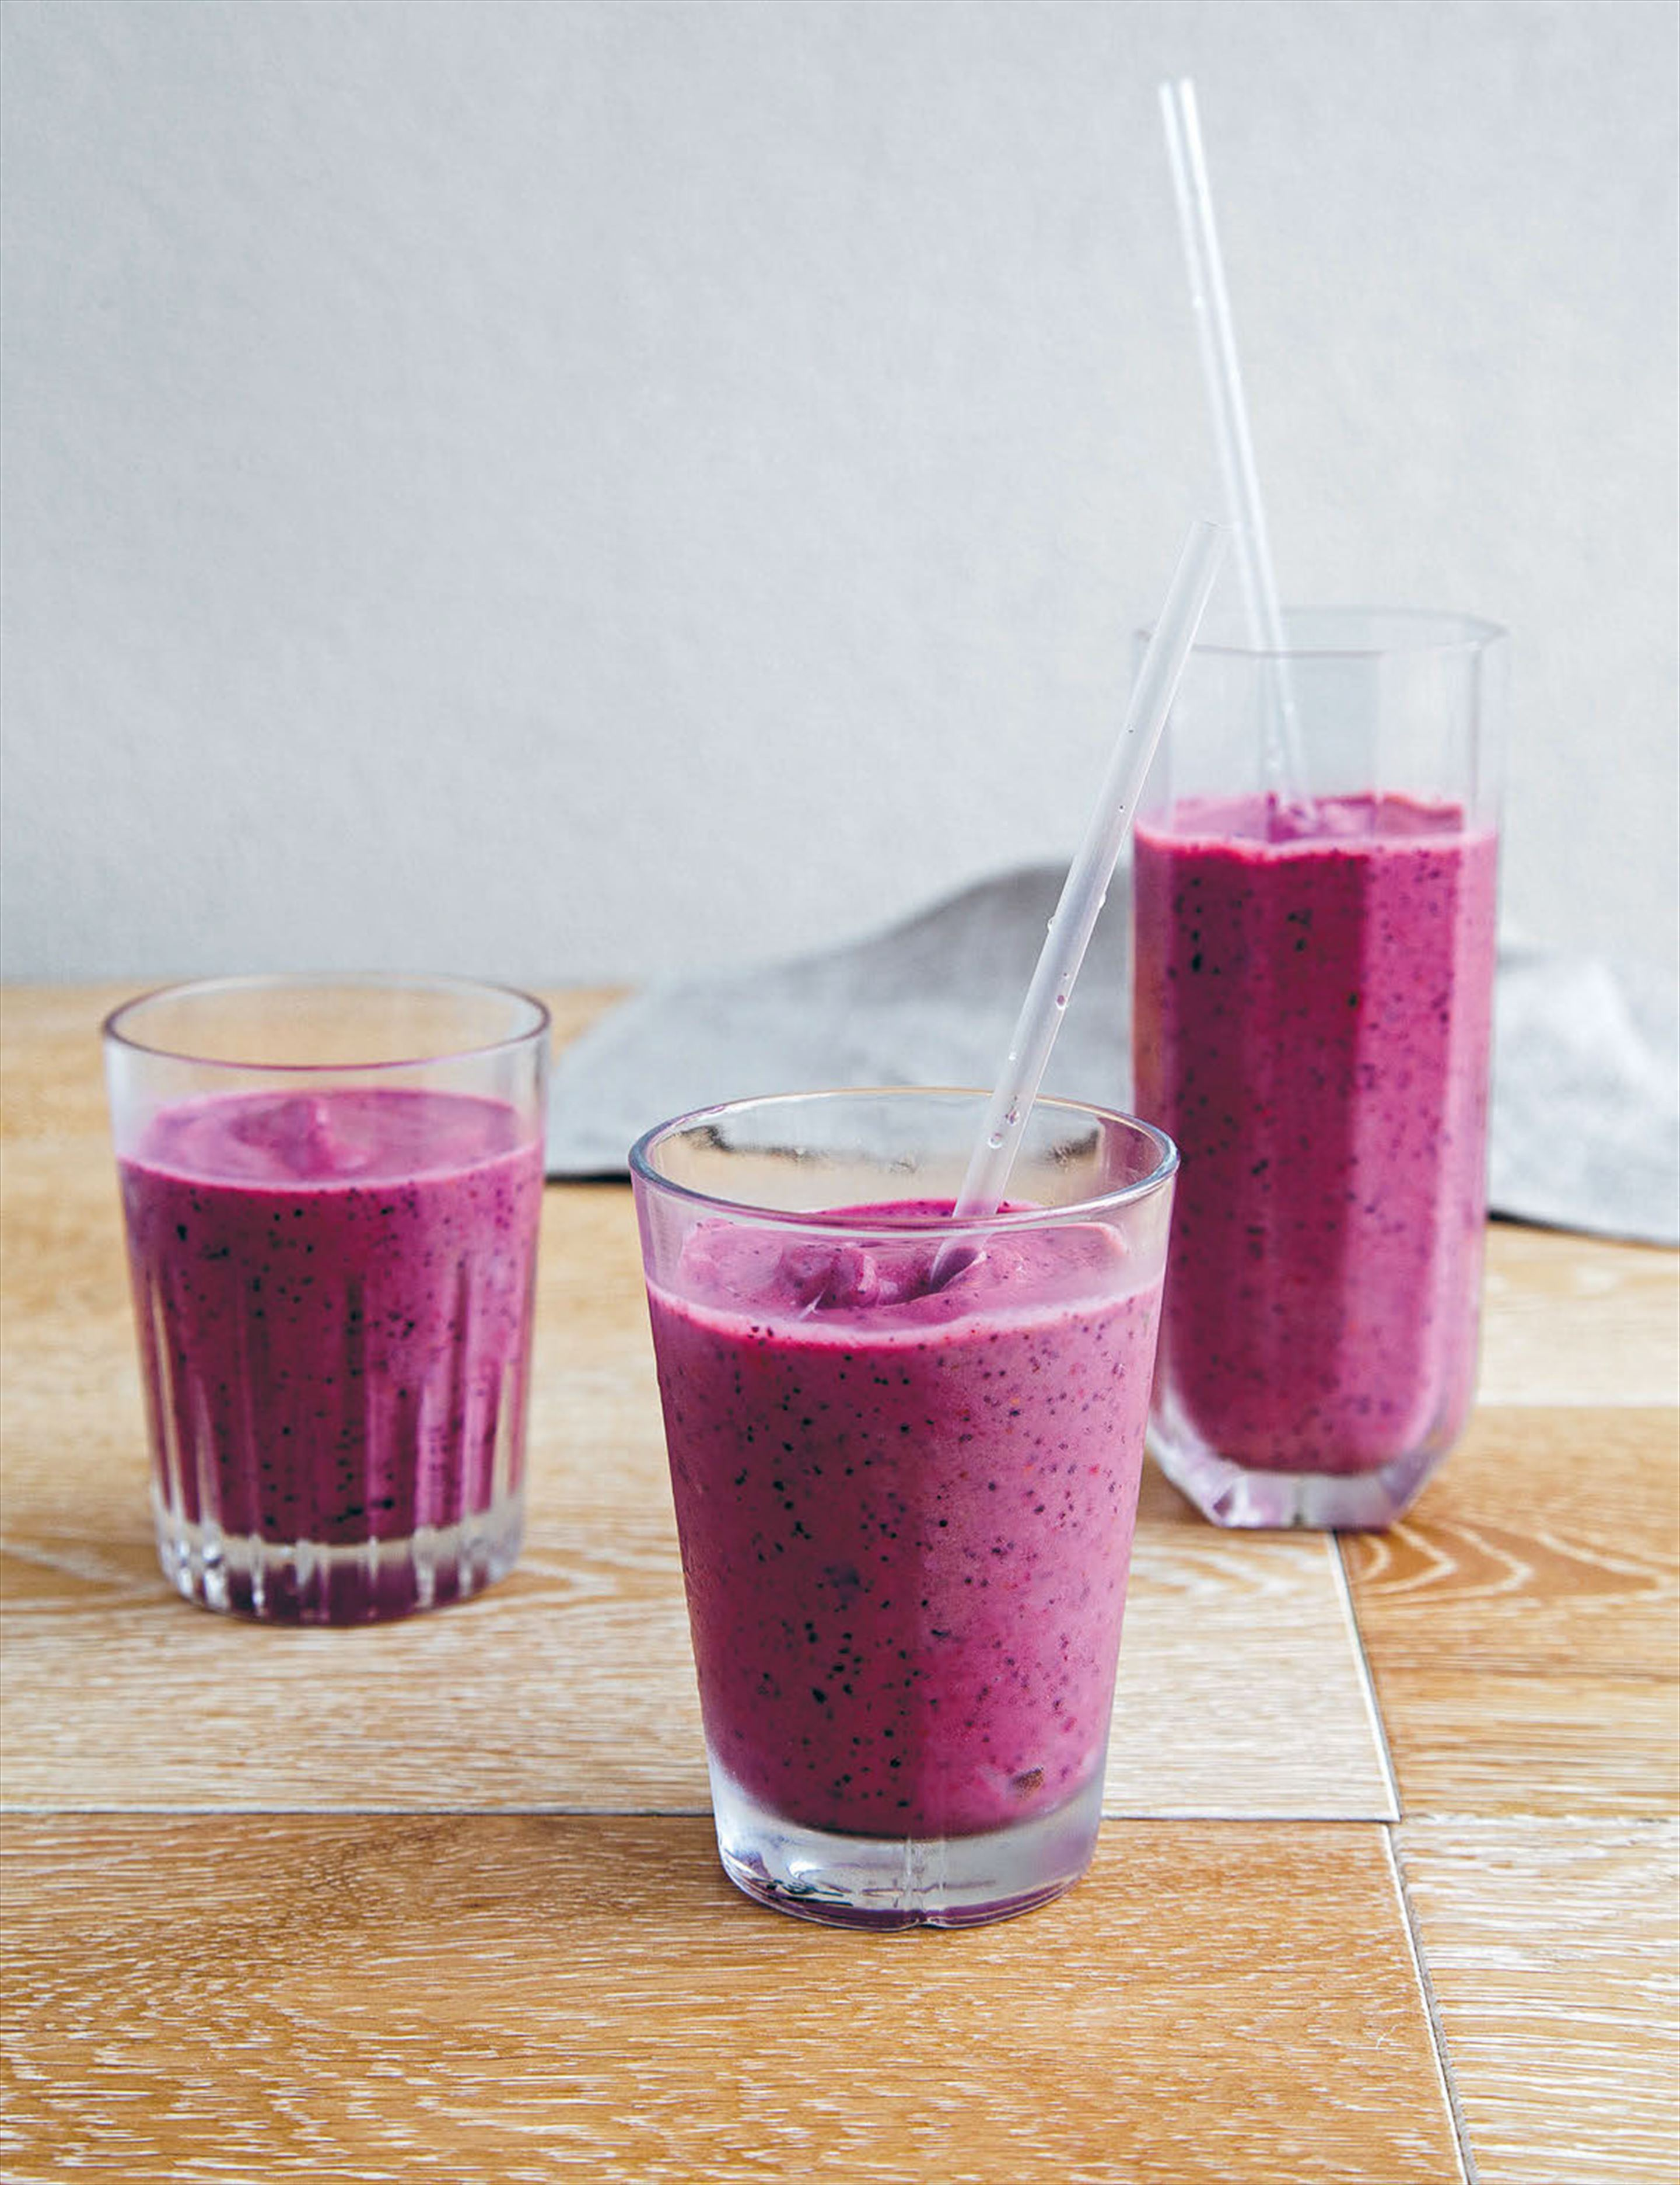 Metabolism-boosting berry smoothie